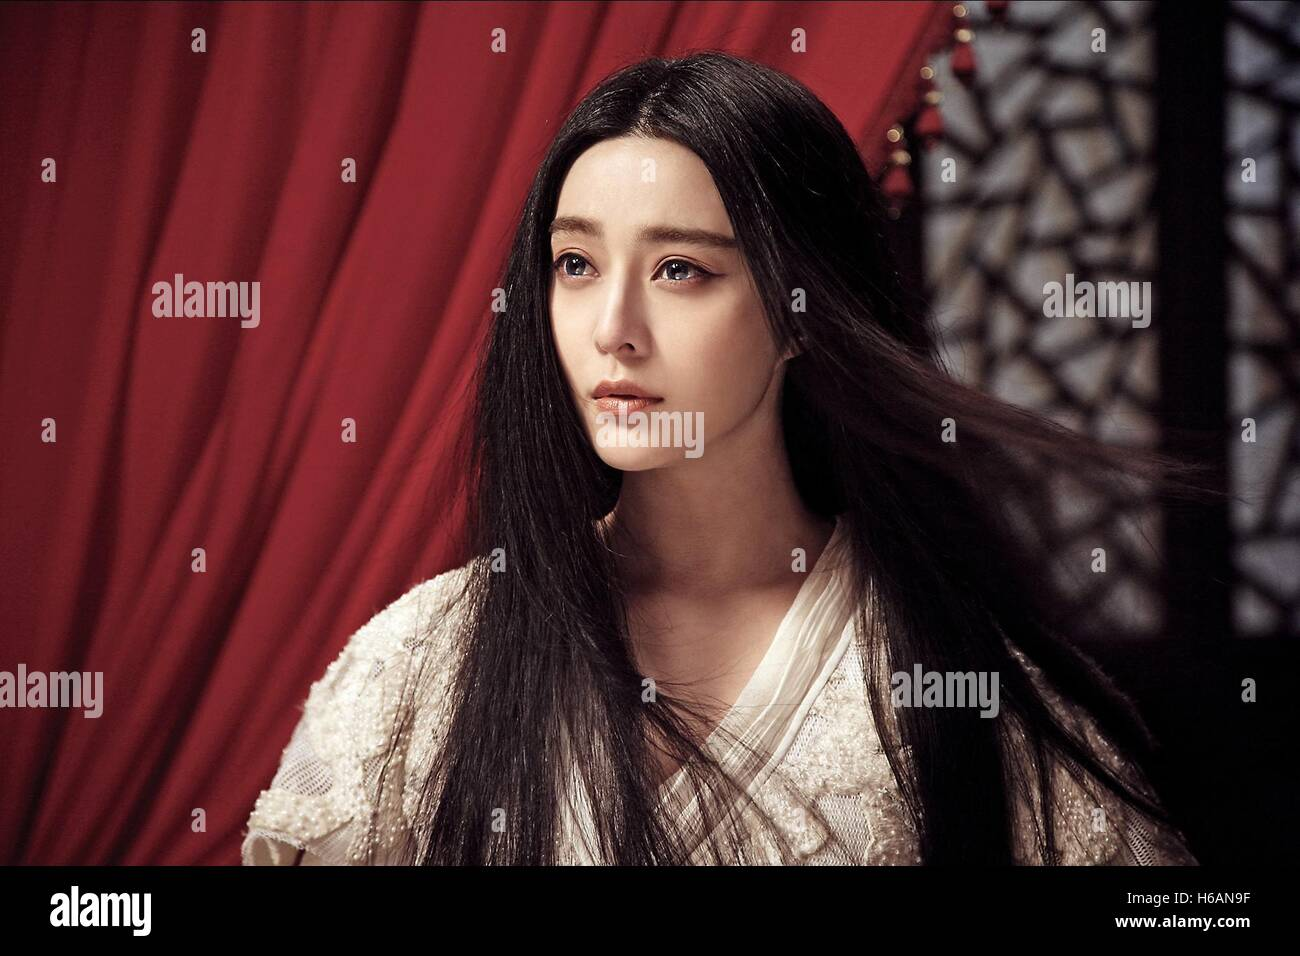 BINGBING FAN THE WHITE HAIRED WITCH OF LUNAR KINGDOM (2014) - Stock Image